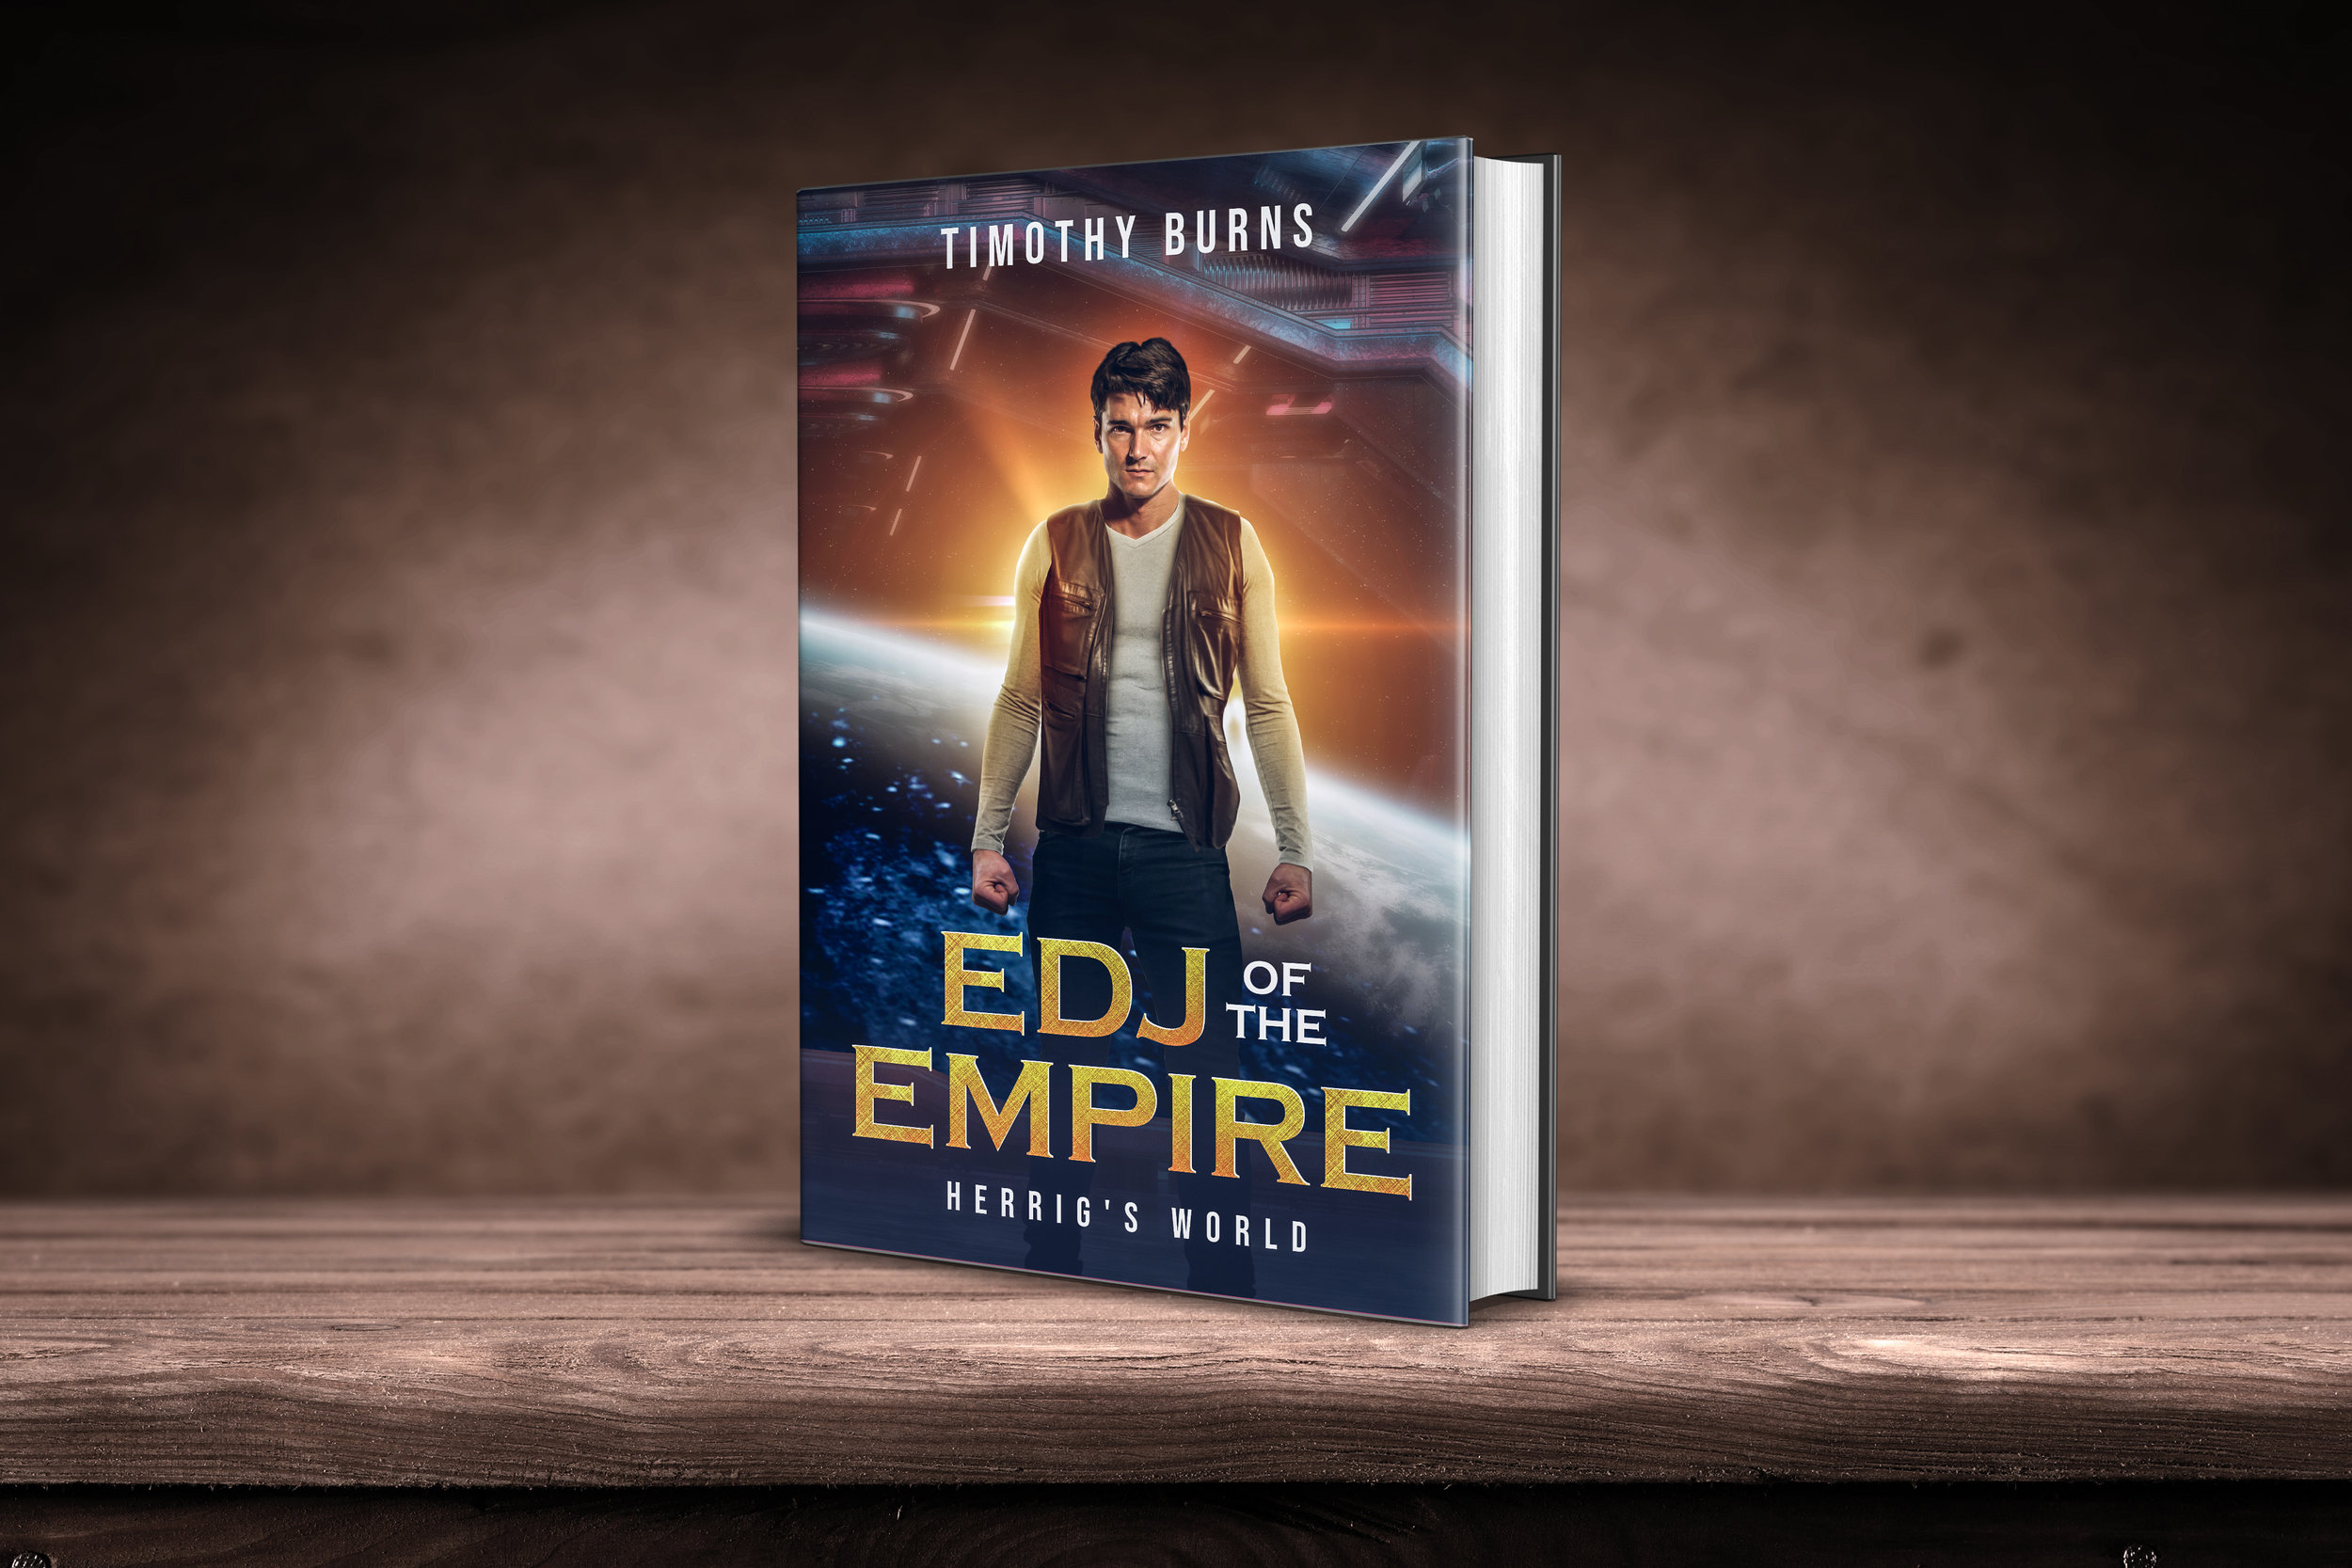 Join Prince Edj as he uncovers a conspiracy to destroy the Empire.